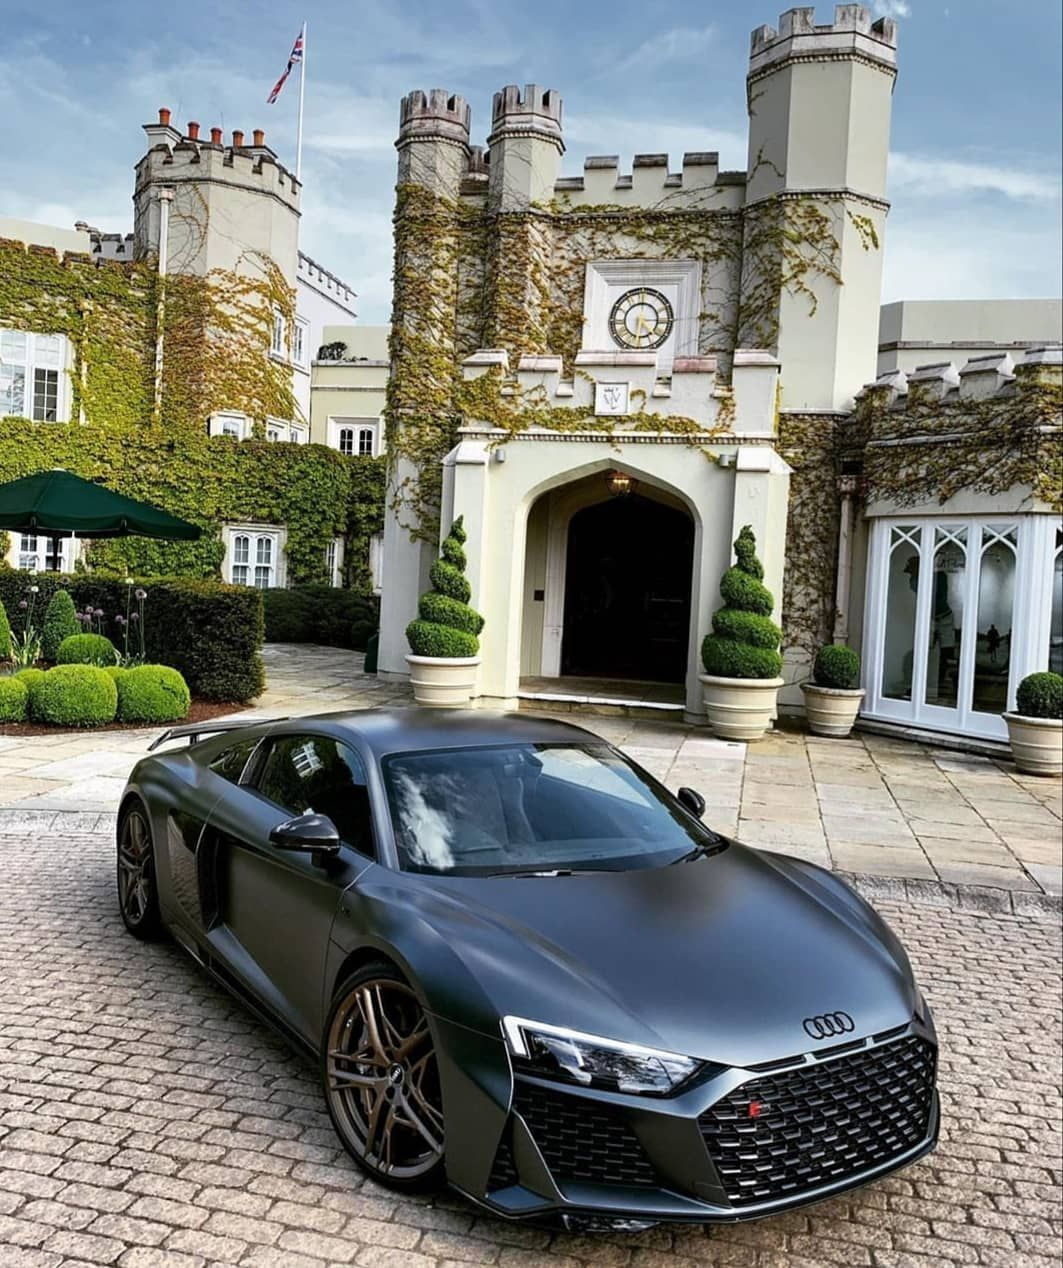 Turbocharge Your Content And Rank Better By Using Updated Searchable Stock Video Collection Of 25 000 Royalty Free Premium Ful In 2020 Sports Cars Luxury Audi Rs Audi